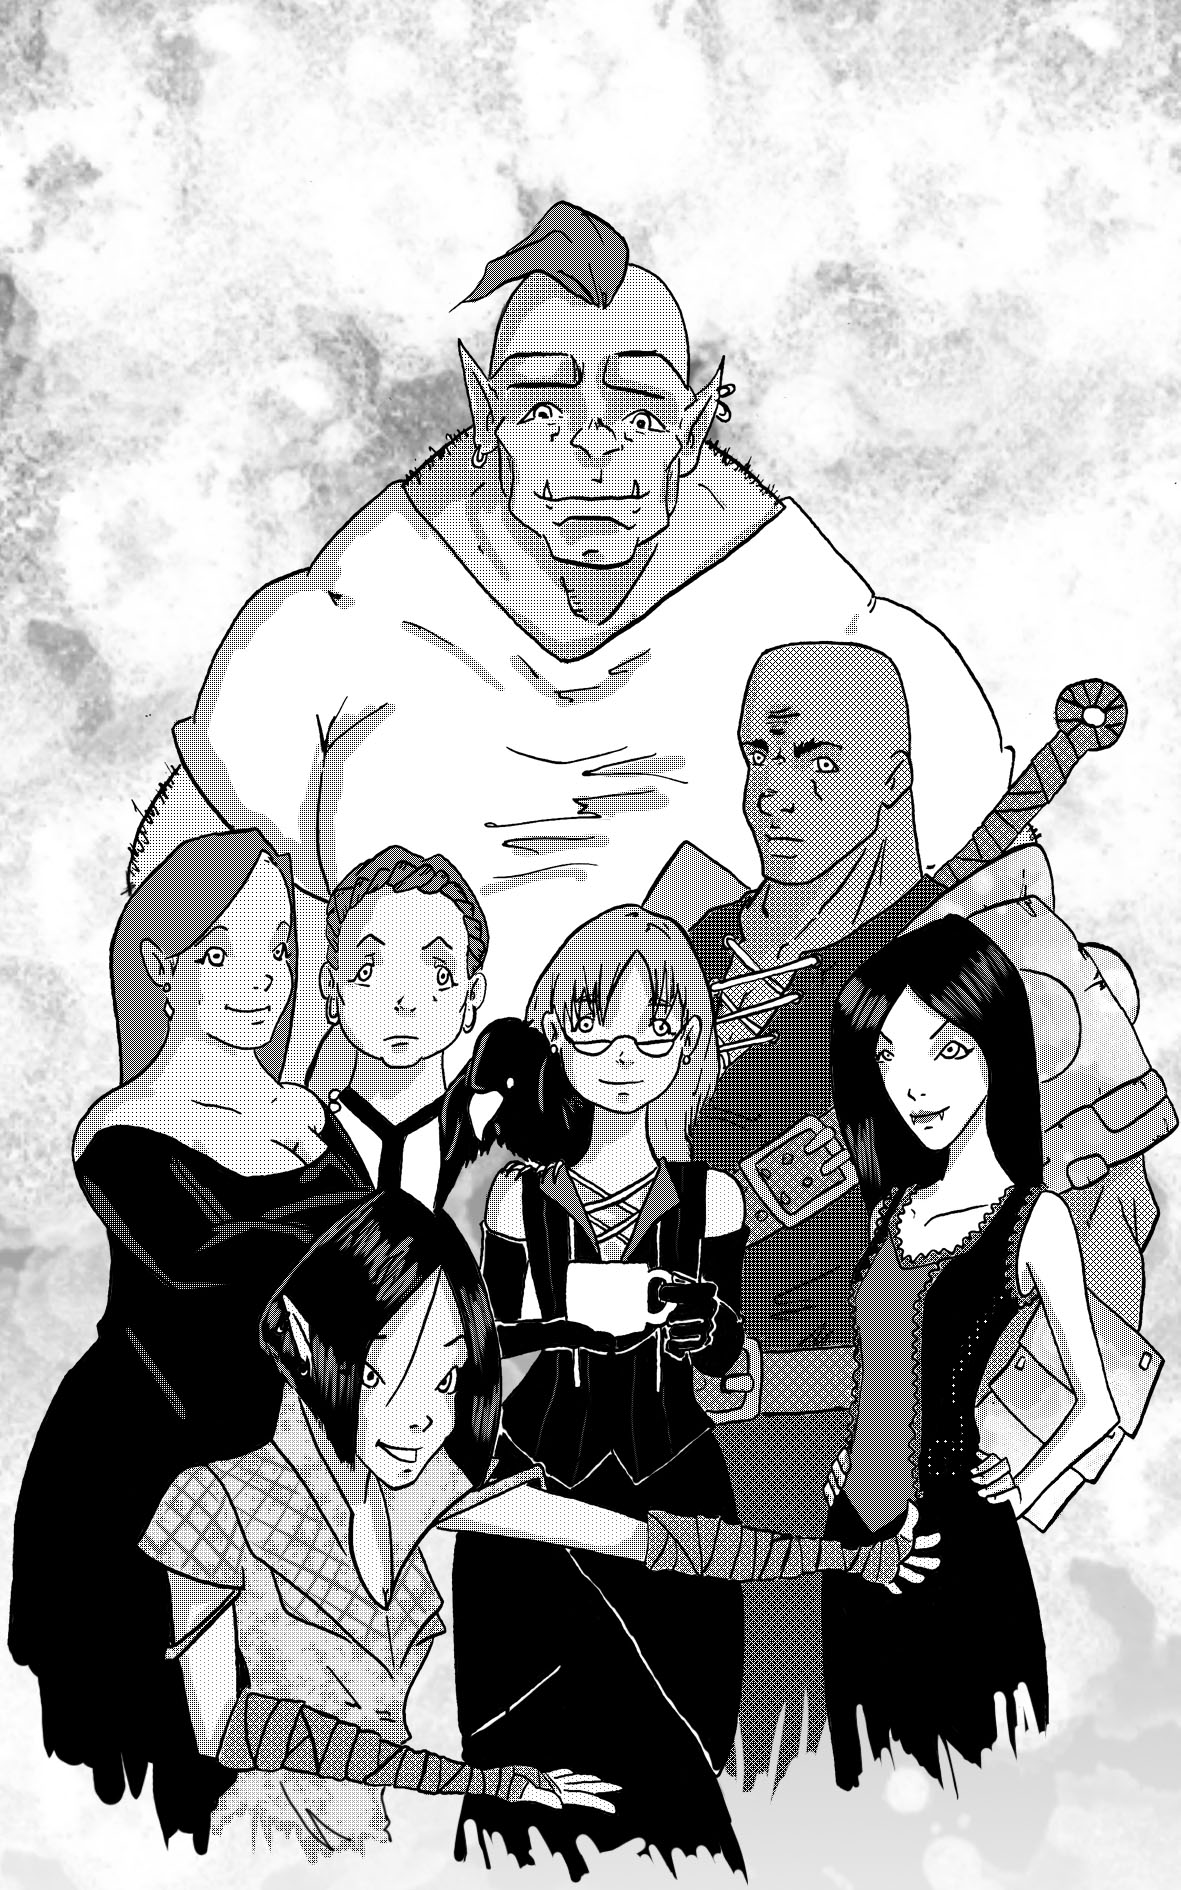 Therapy Quest Interior Group Character Illustration